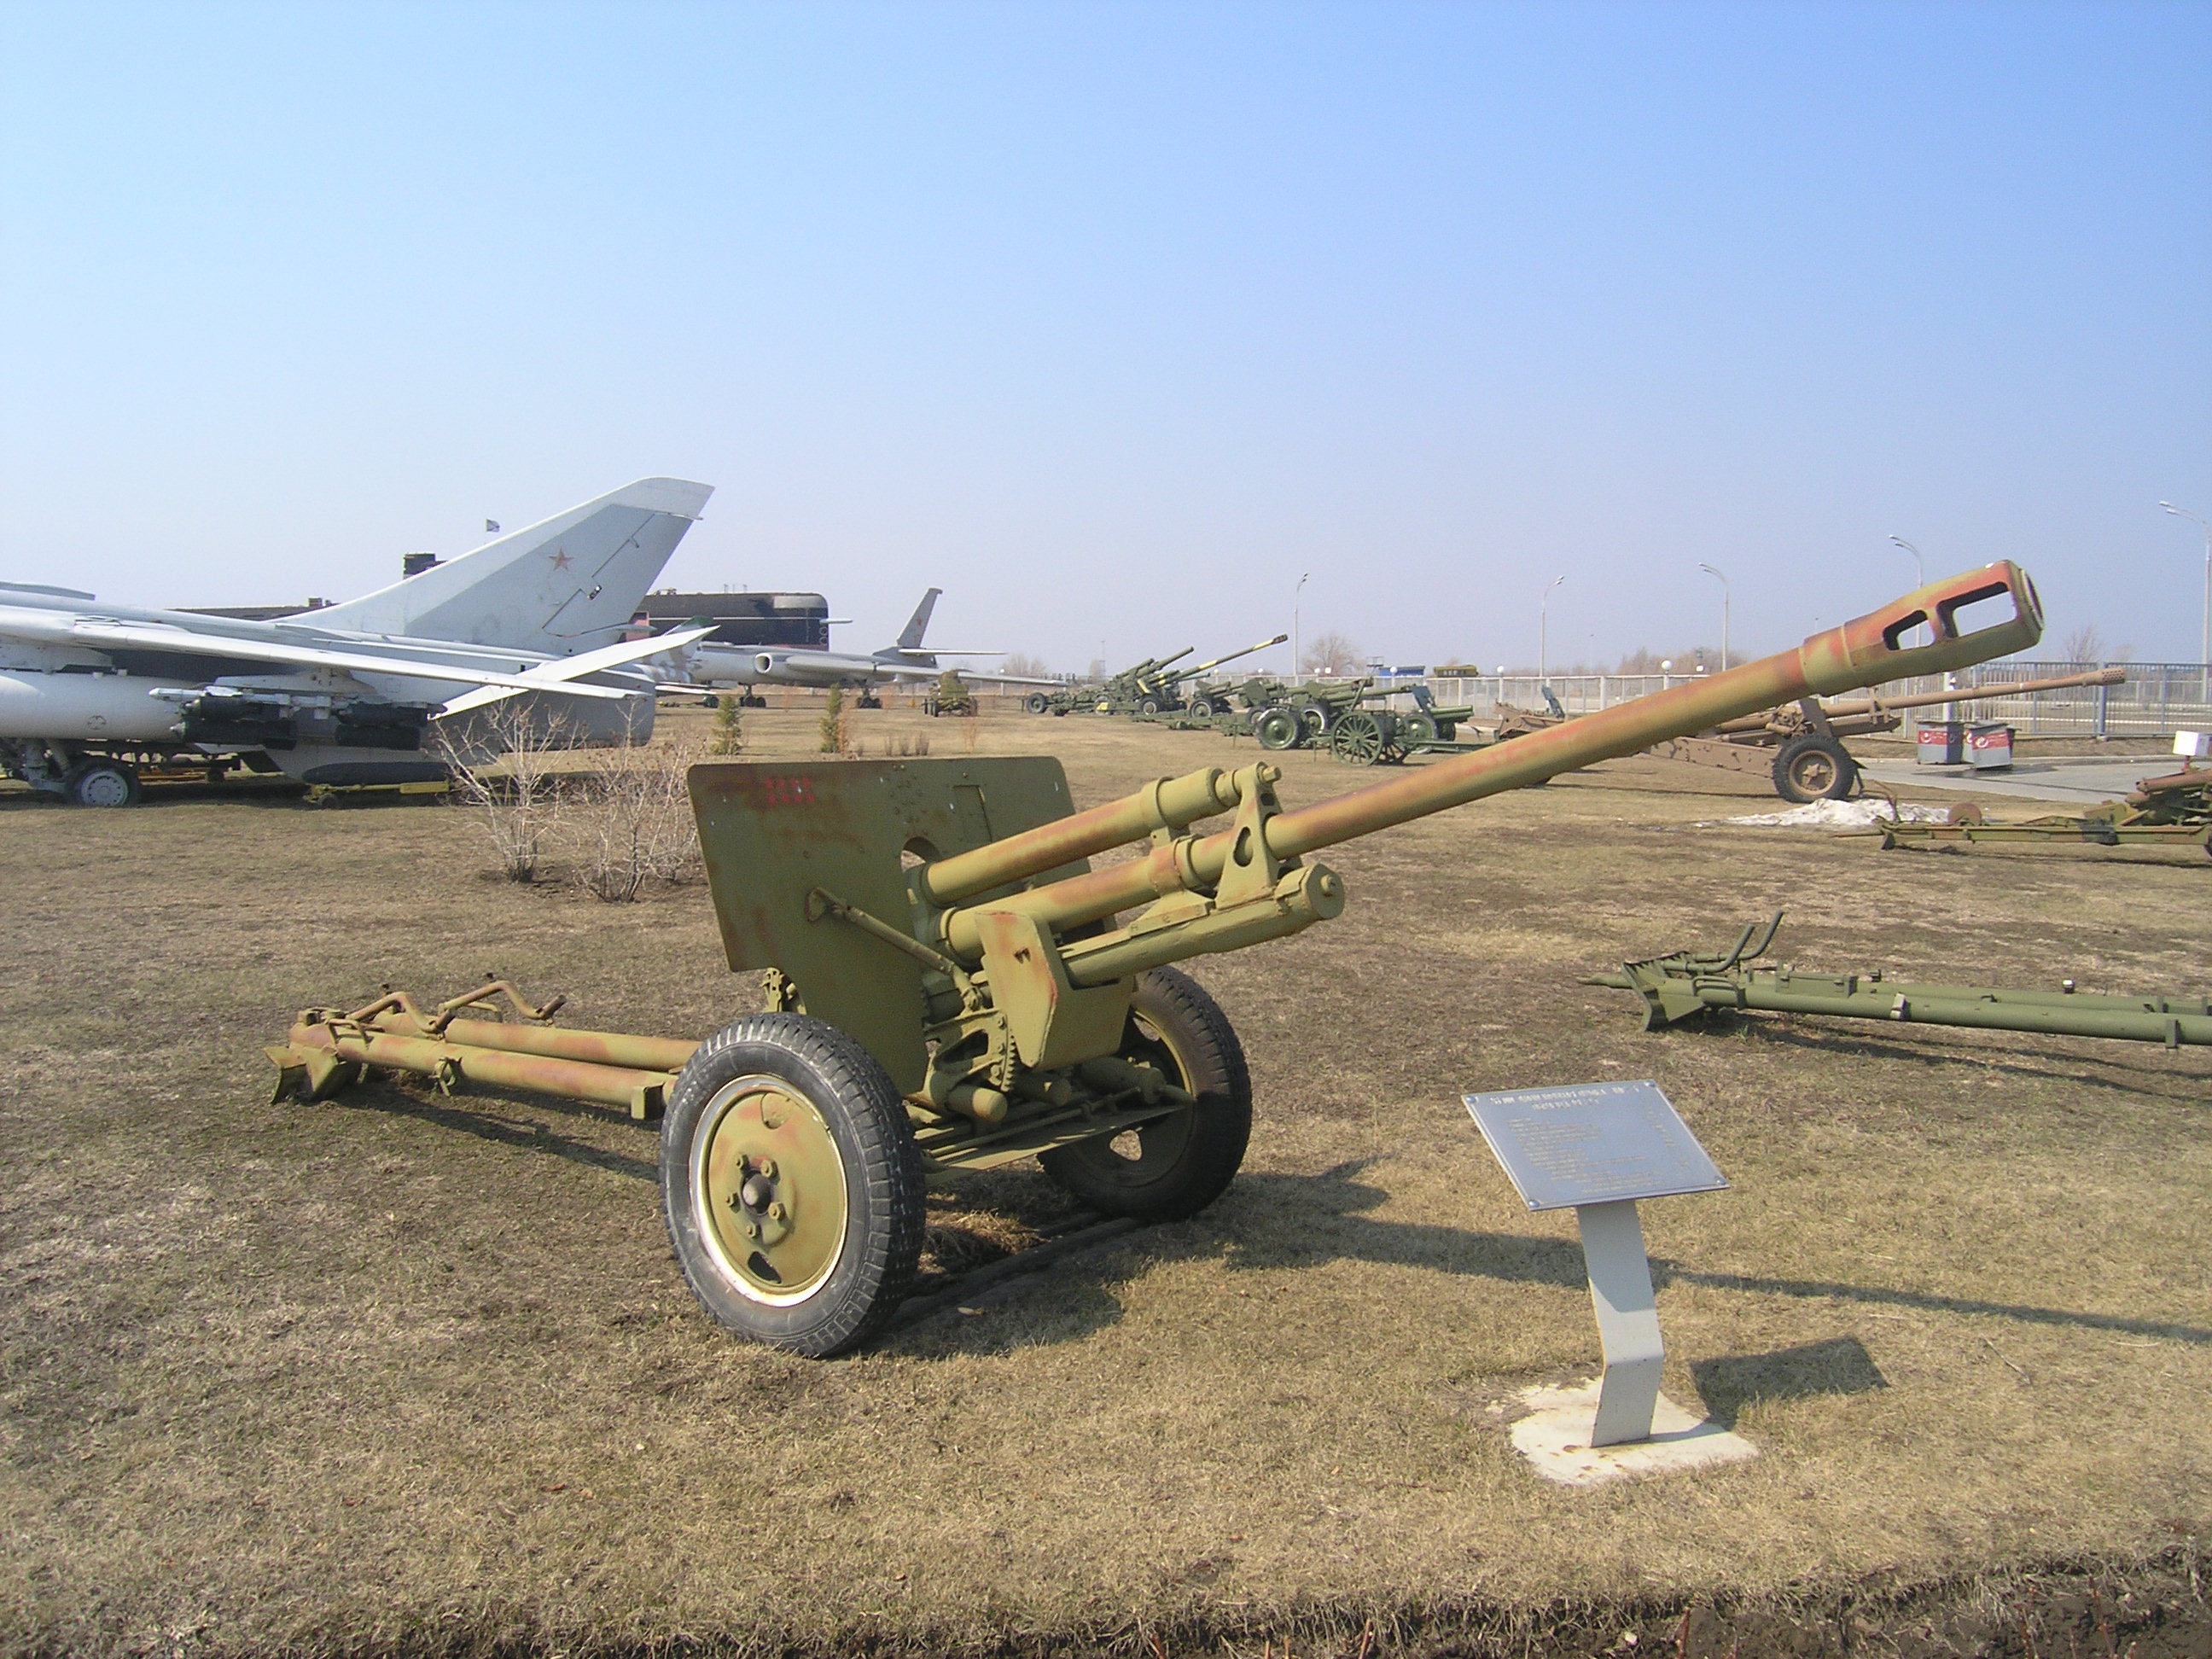 FileZIS3 76 mm gun4630JPG  Wikimedia Commons